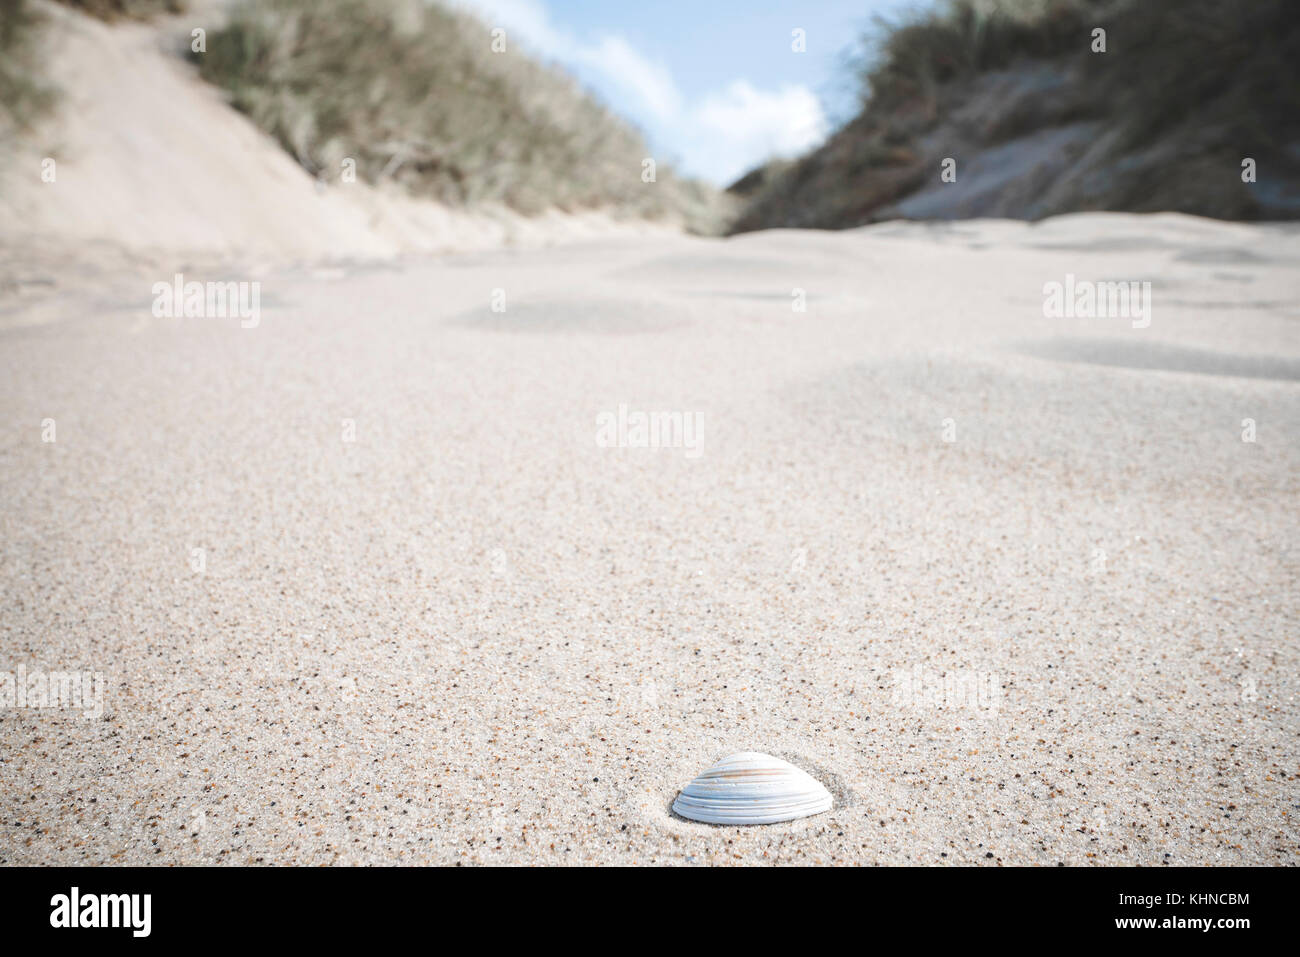 White sea shell in the sand on a nordic coast with dunes on the beach - Stock Image